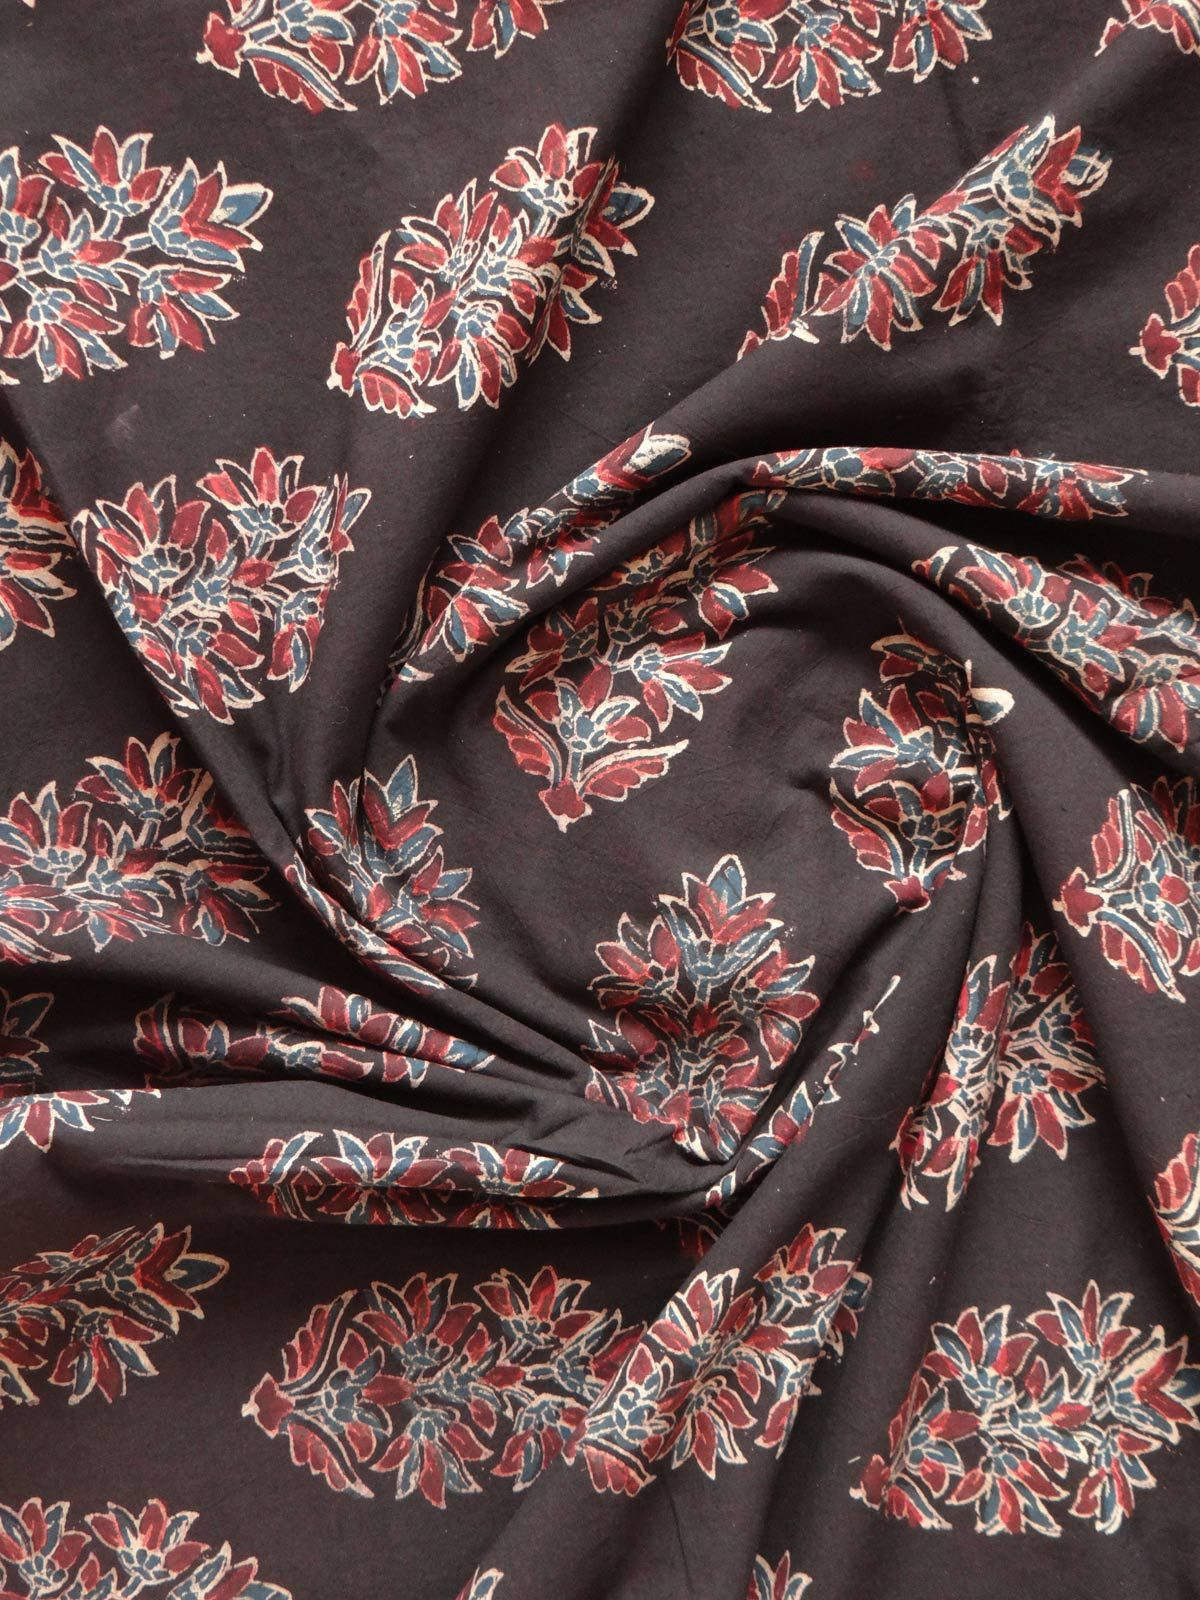 BLOCK PRINTED DARK BROWN YARDAGE FABRIC